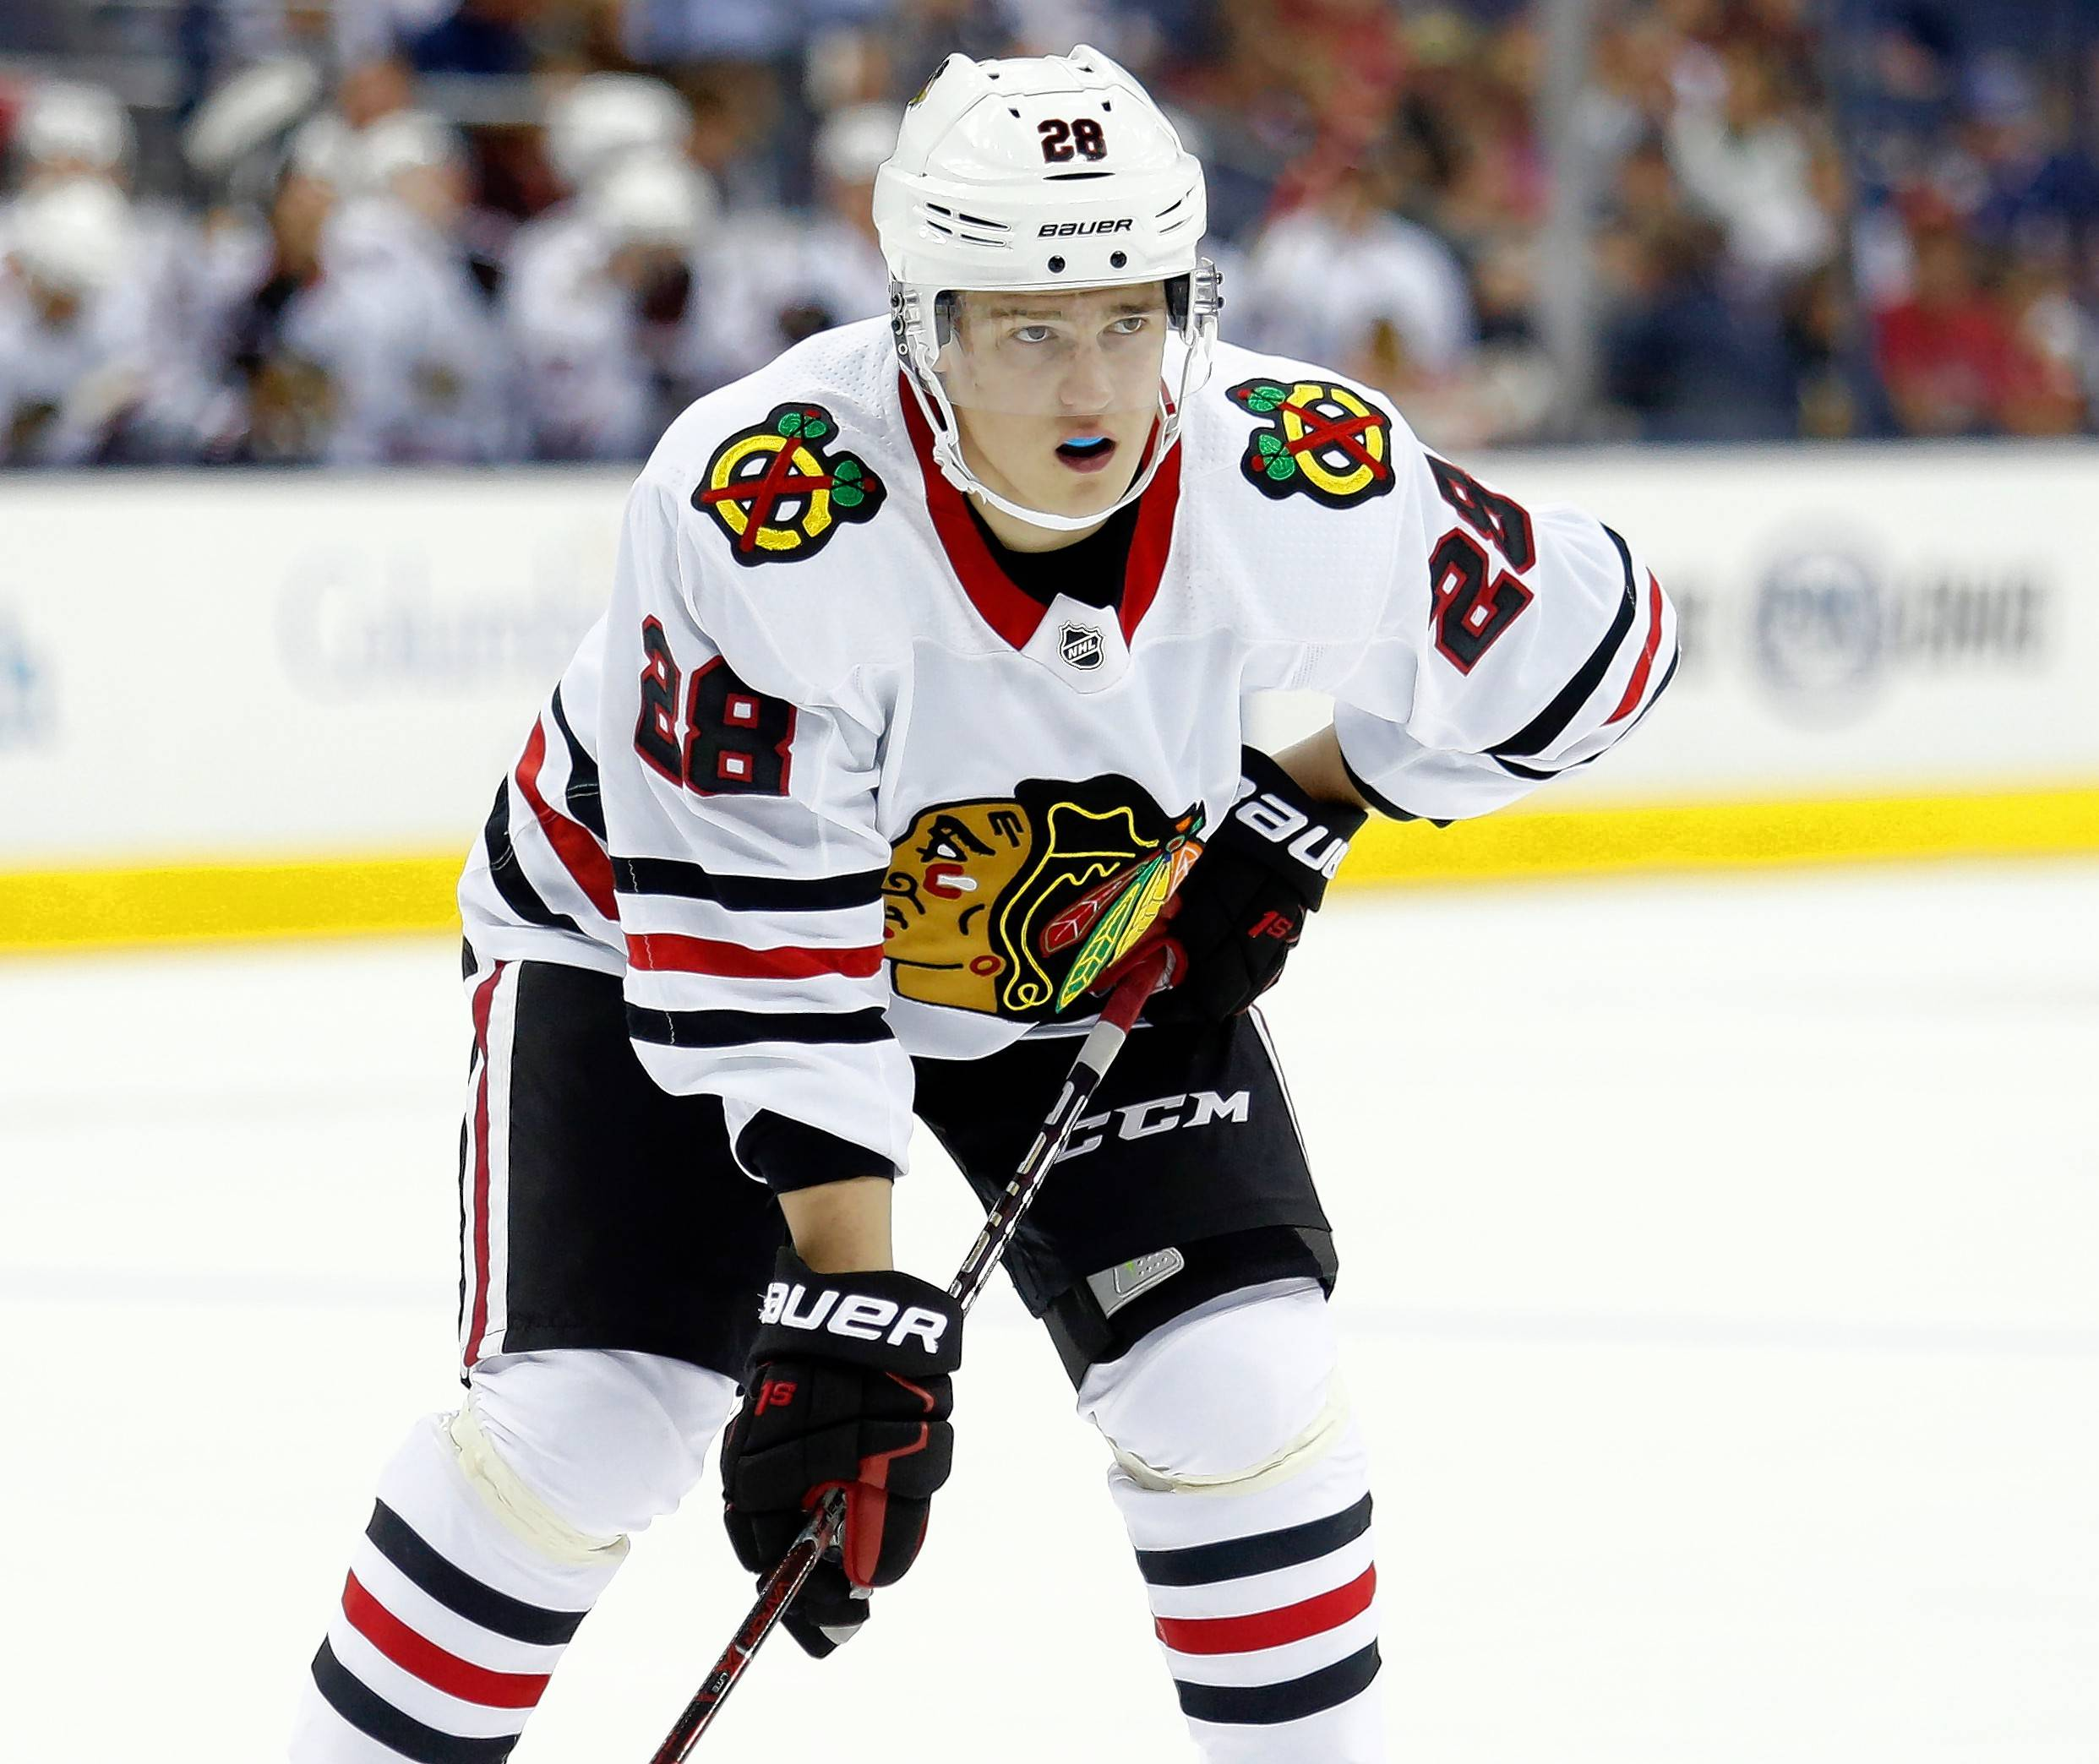 Chicago Blackhawks defenseman Henri Jokiharju, of Finland, is seen against the Columbus Blue Jackets during a preseason NHL hockey game in Columbus, Ohio, Tuesday, Sept. 19, 2017. (AP Photo/Paul Vernon)